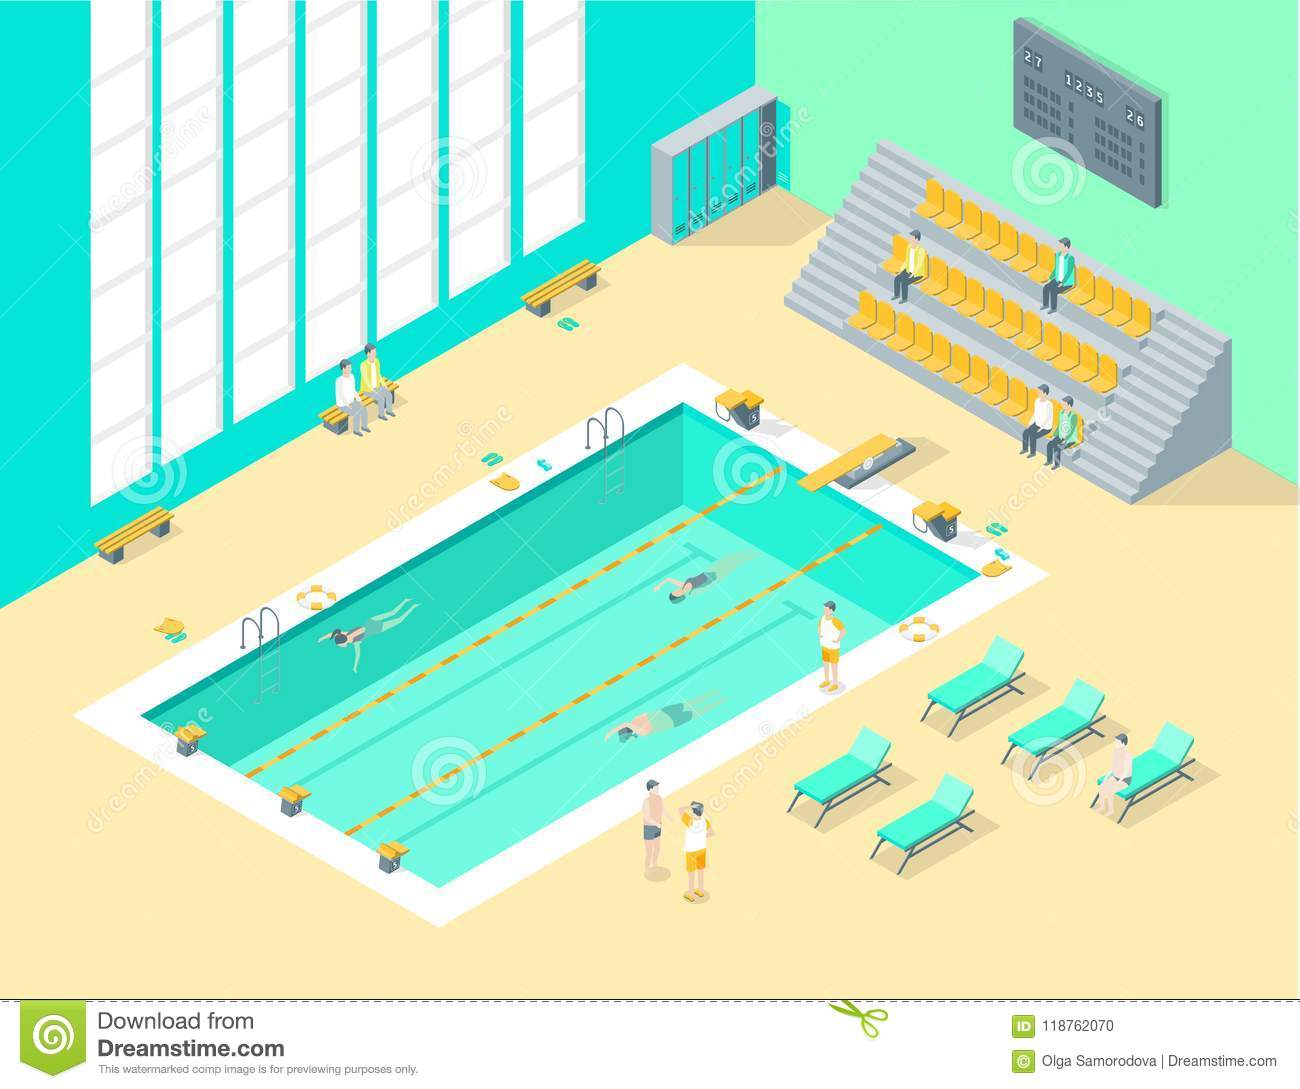 Indoors Swimming Pool Interior with People Isometric View. Vector